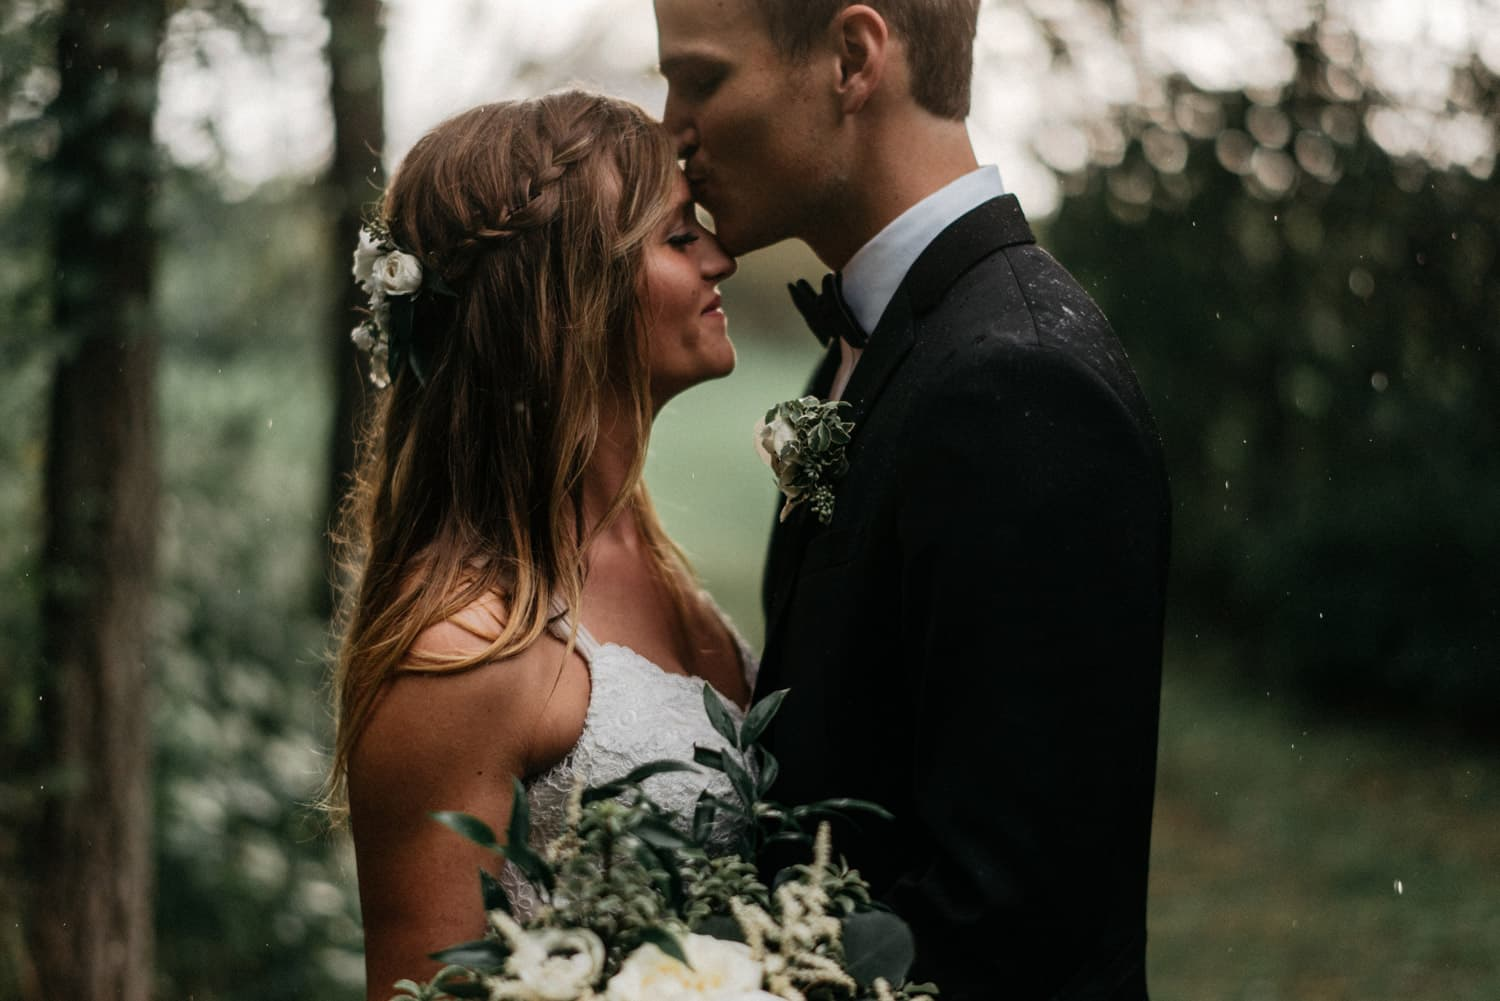 groom kisses bride on the forehead at outdoor wedding